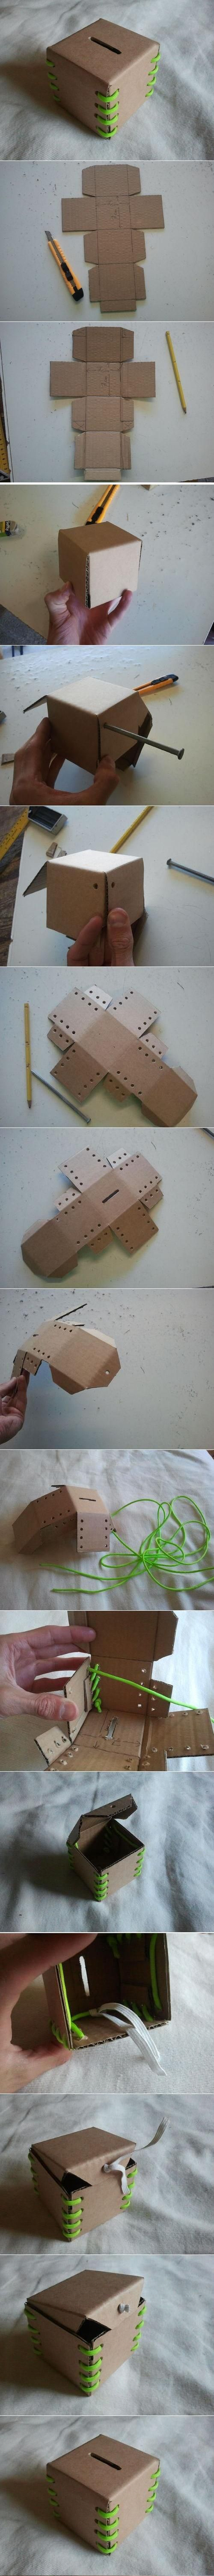 DIY Cardboard Piggy Bank